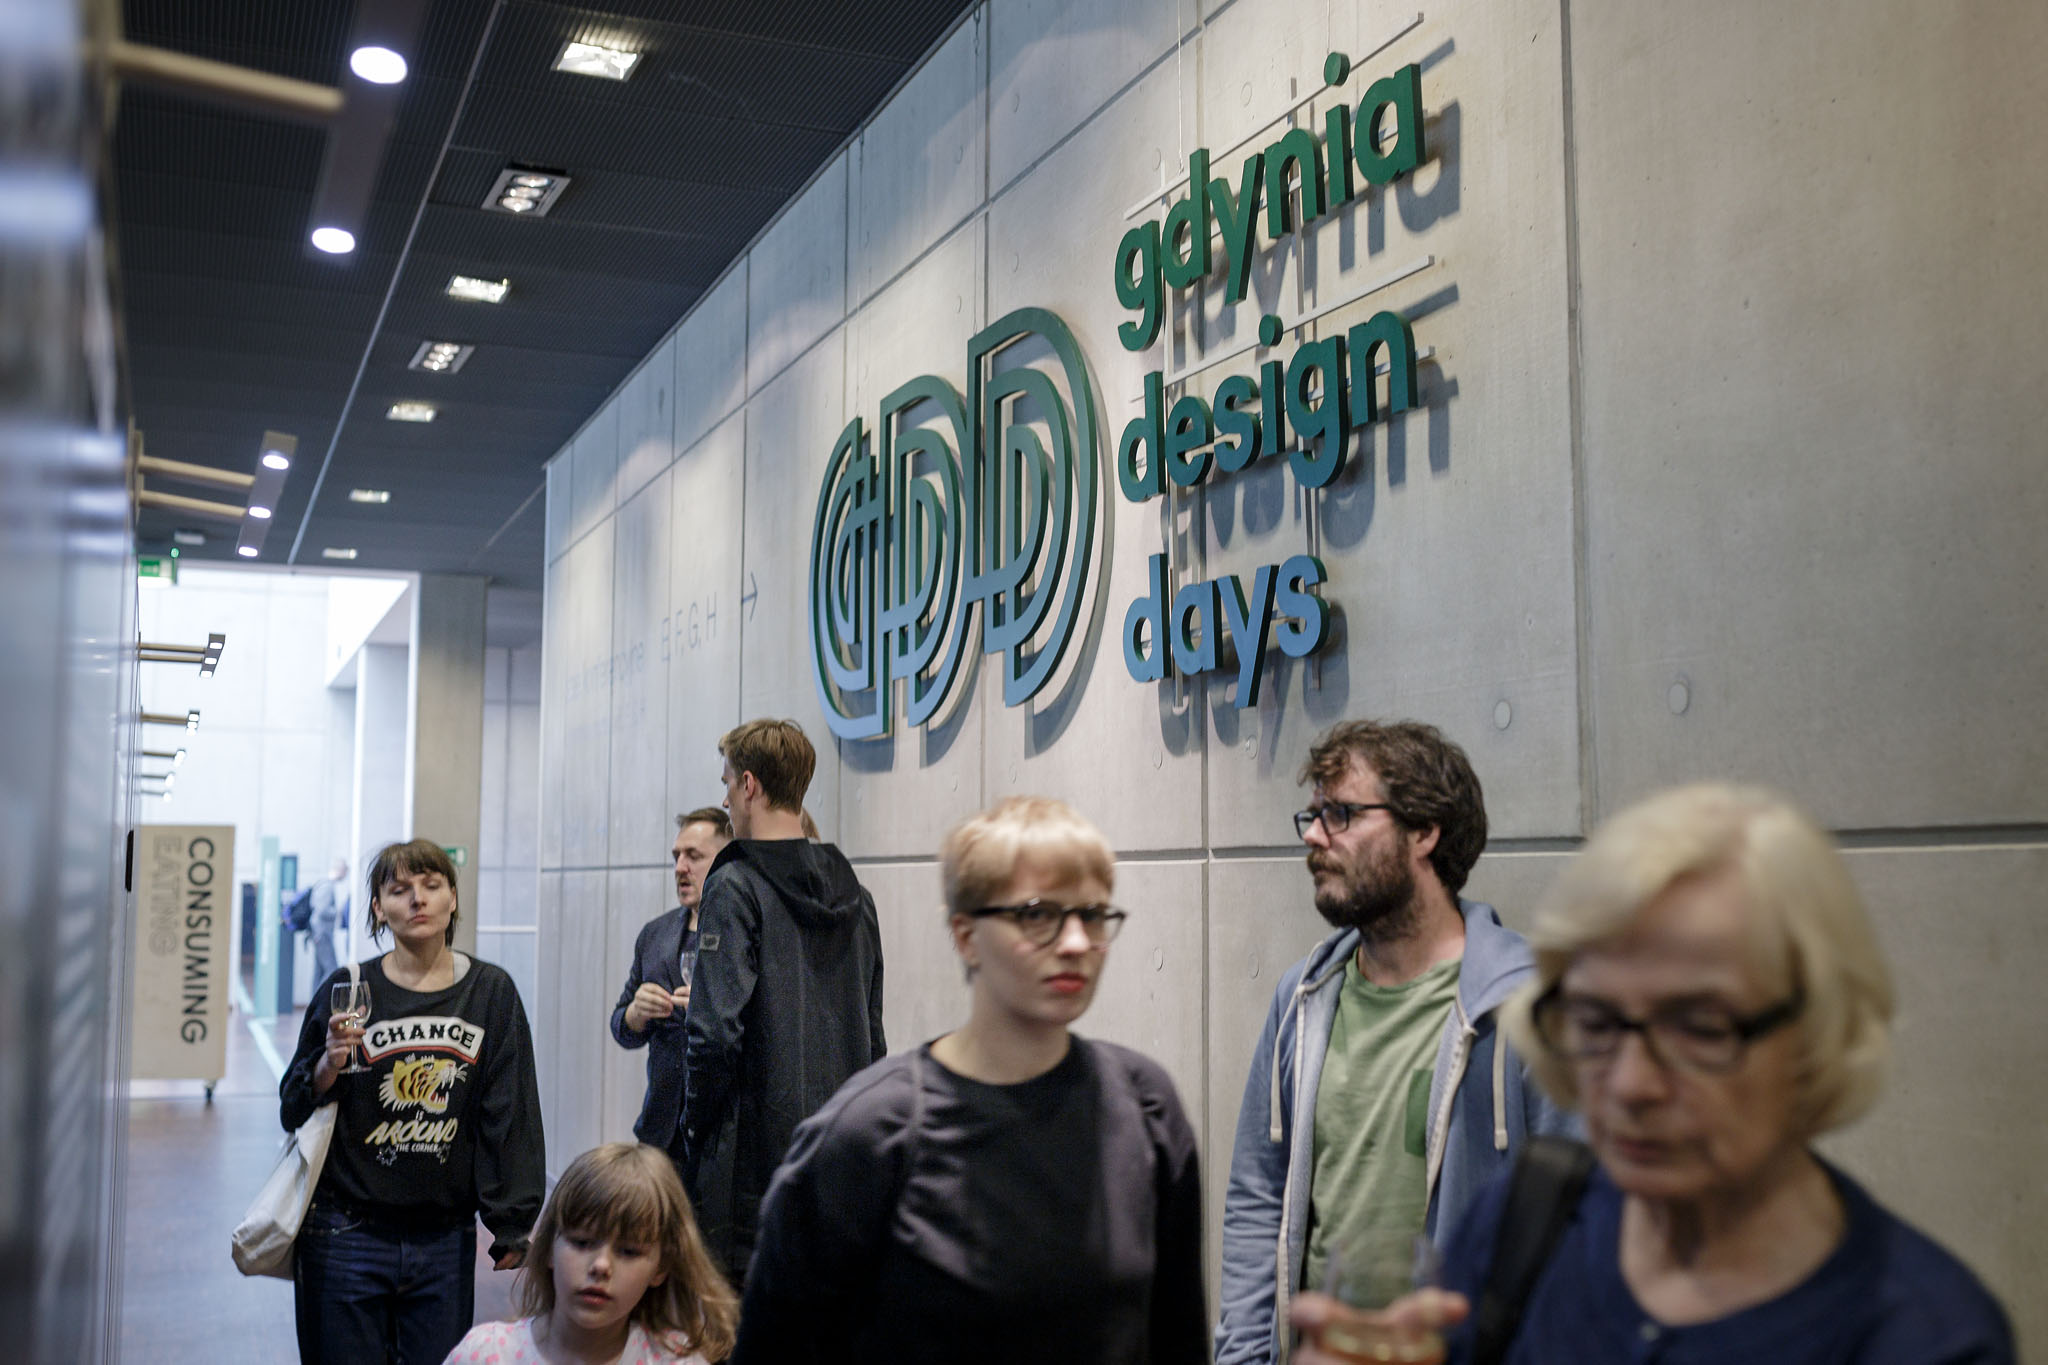 Gdynia Design Days